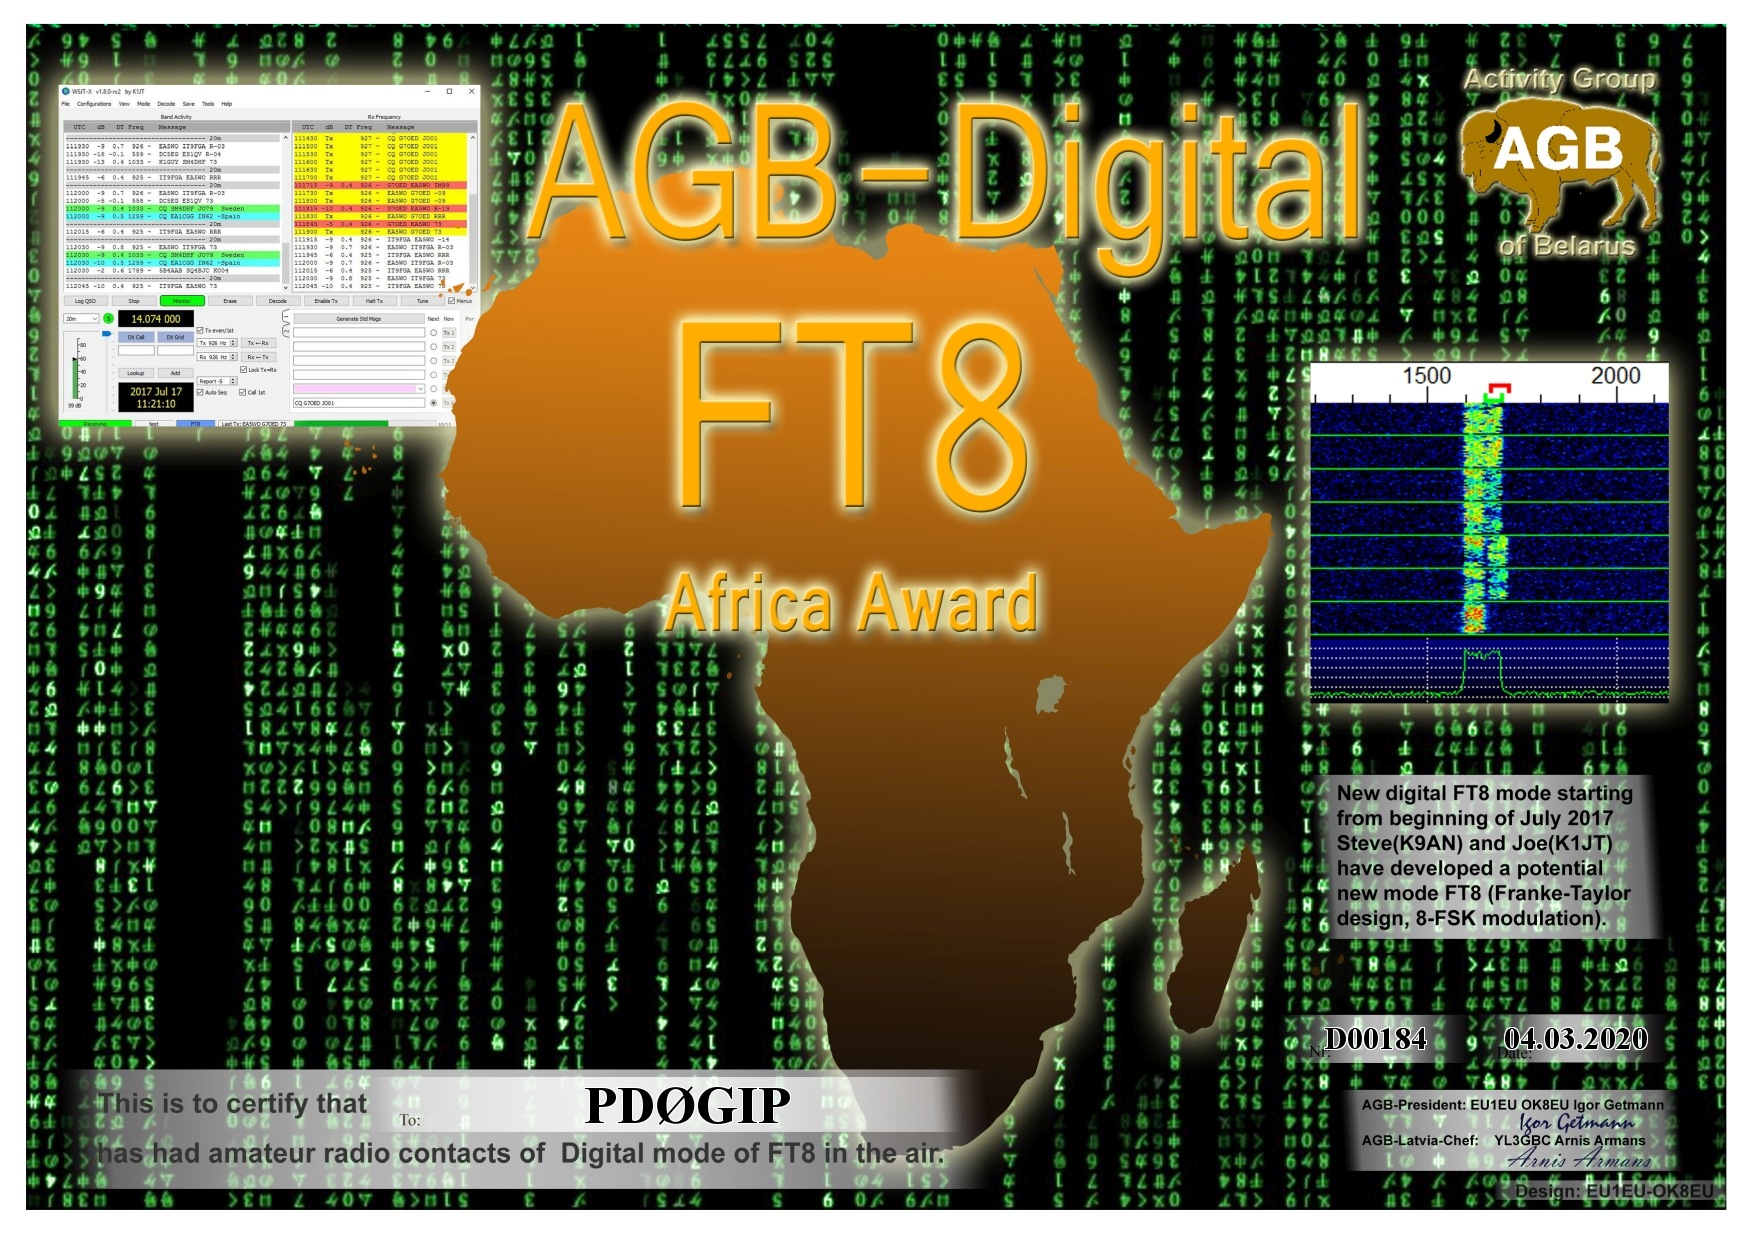 PD0GIP FT8 AFRICA BASIC AGB